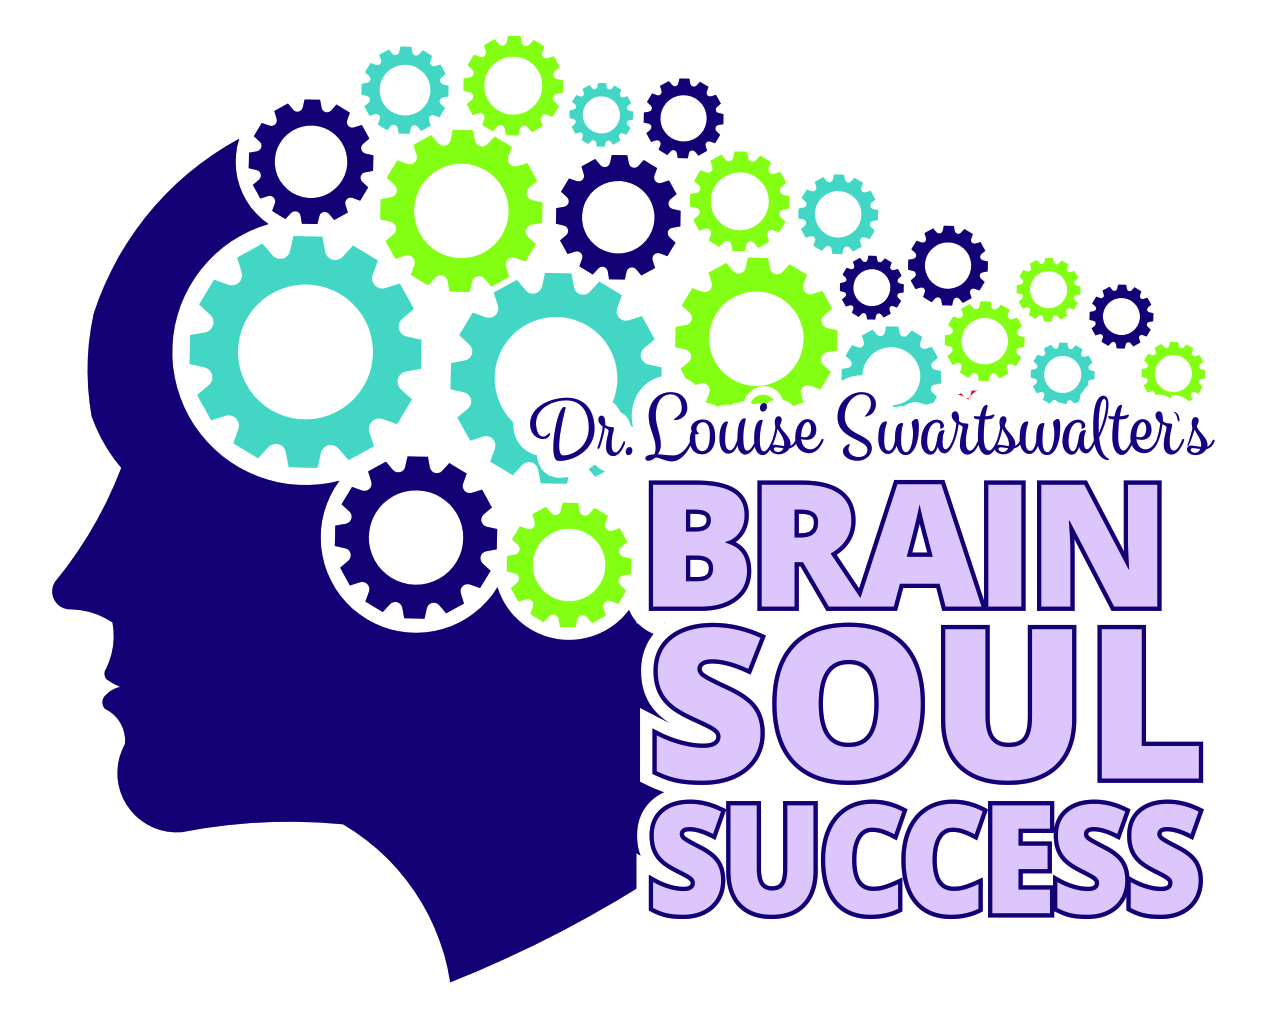 It's the Brain Soul Success Show!